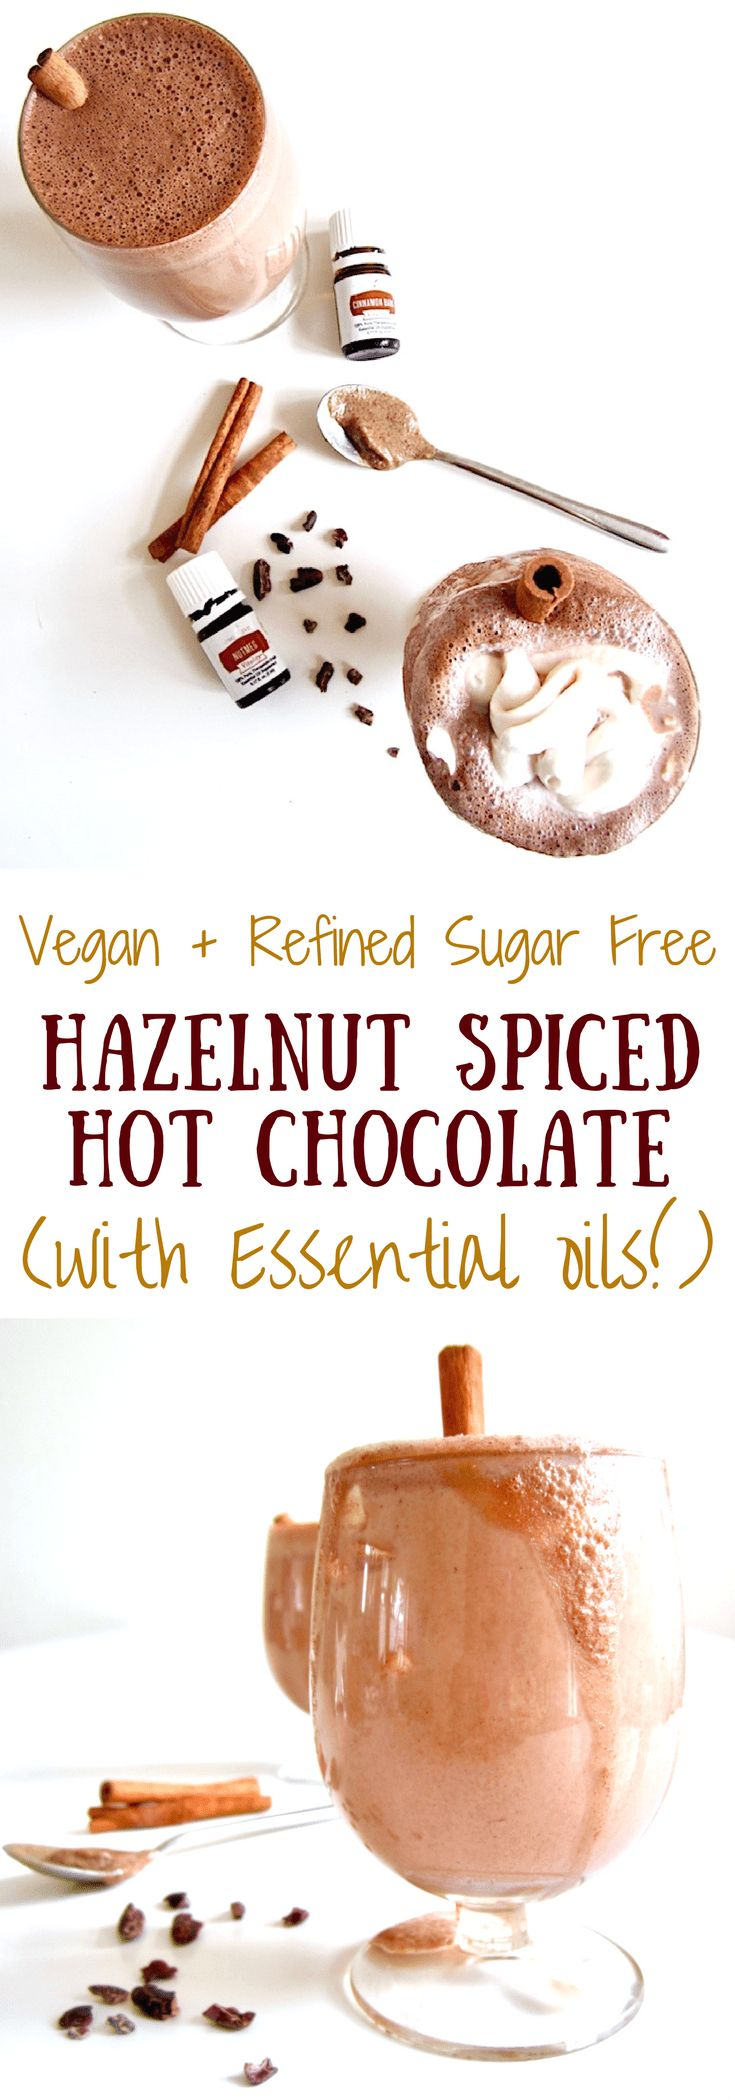 This warming Hazelnut Spiced Hot Chocolate recipe uses a combination of hazelnut butter with cinnamon and nutmeg essential oils to create a creamy and healthy refined sugar free treat, perfect for a cold winter day! Drink through a cinnamon stick 'straw' for extra fun and deliciousness. (Note: You can substitute cinnamon and nutmeg spices instead of using the oils if you don't have them, or omit for a more traditional hot chocolate.) #hotchocolate #veganrecipes #refinedsugarfree…